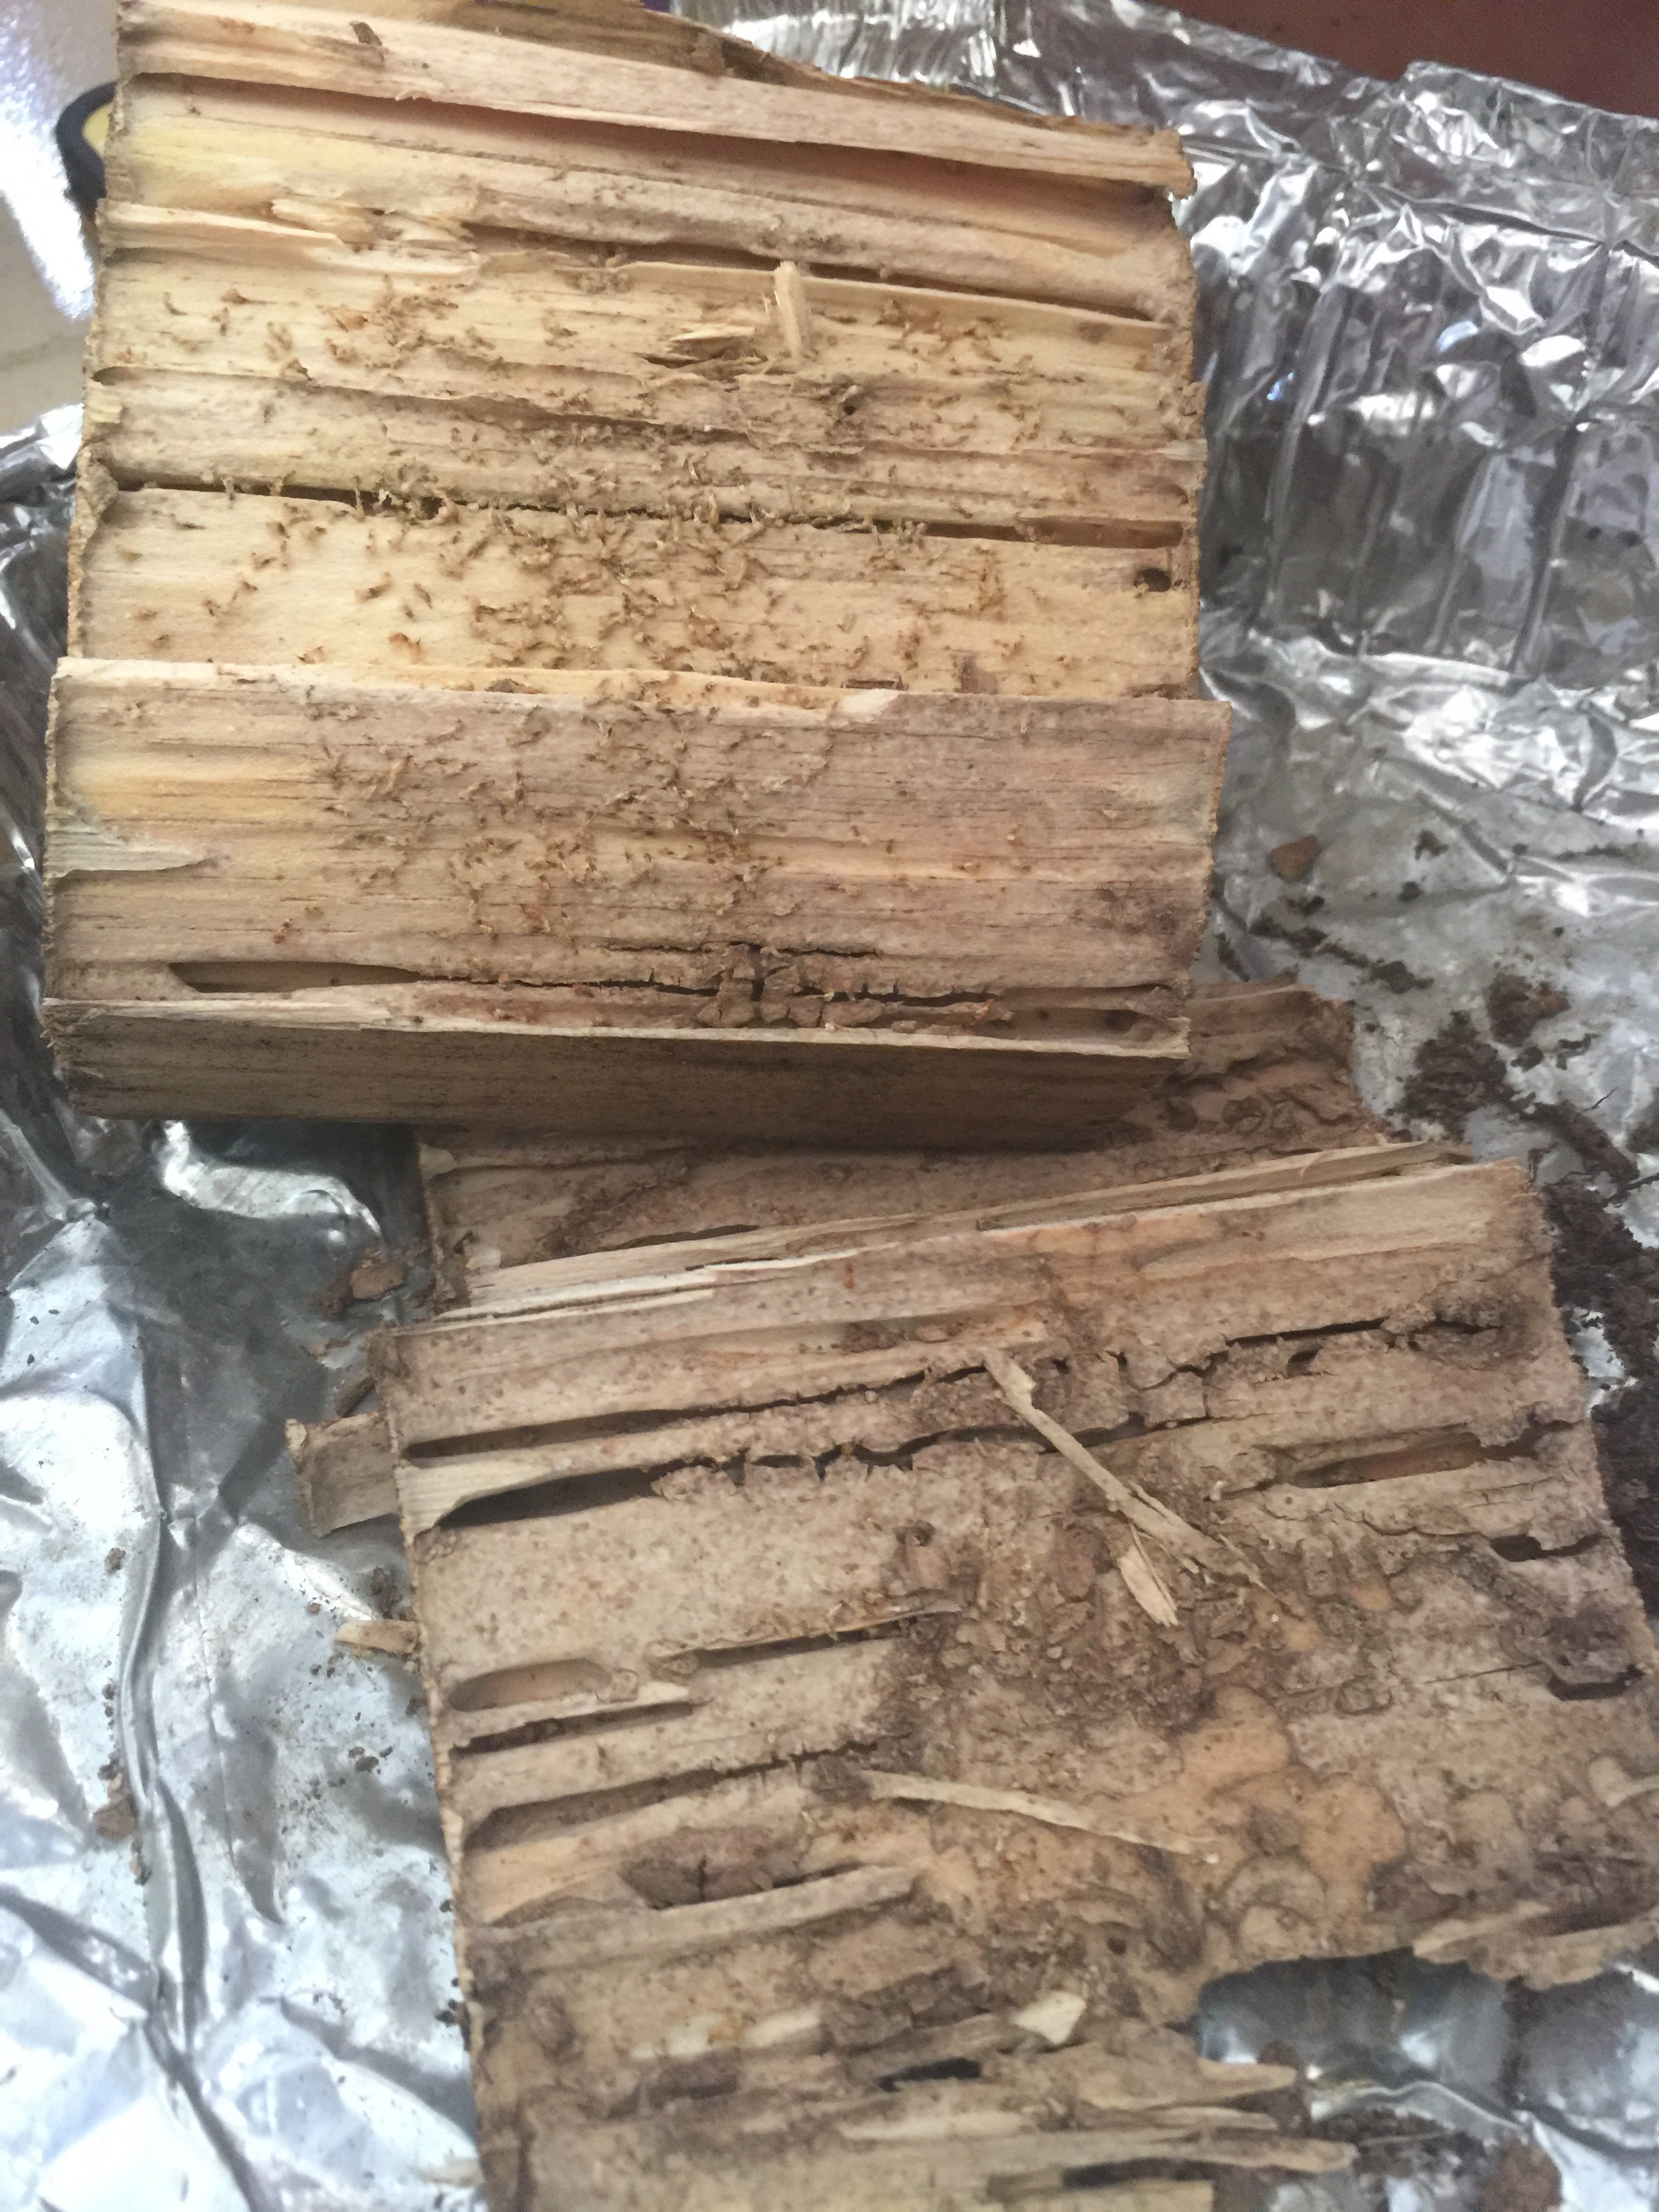 Wood block with termites